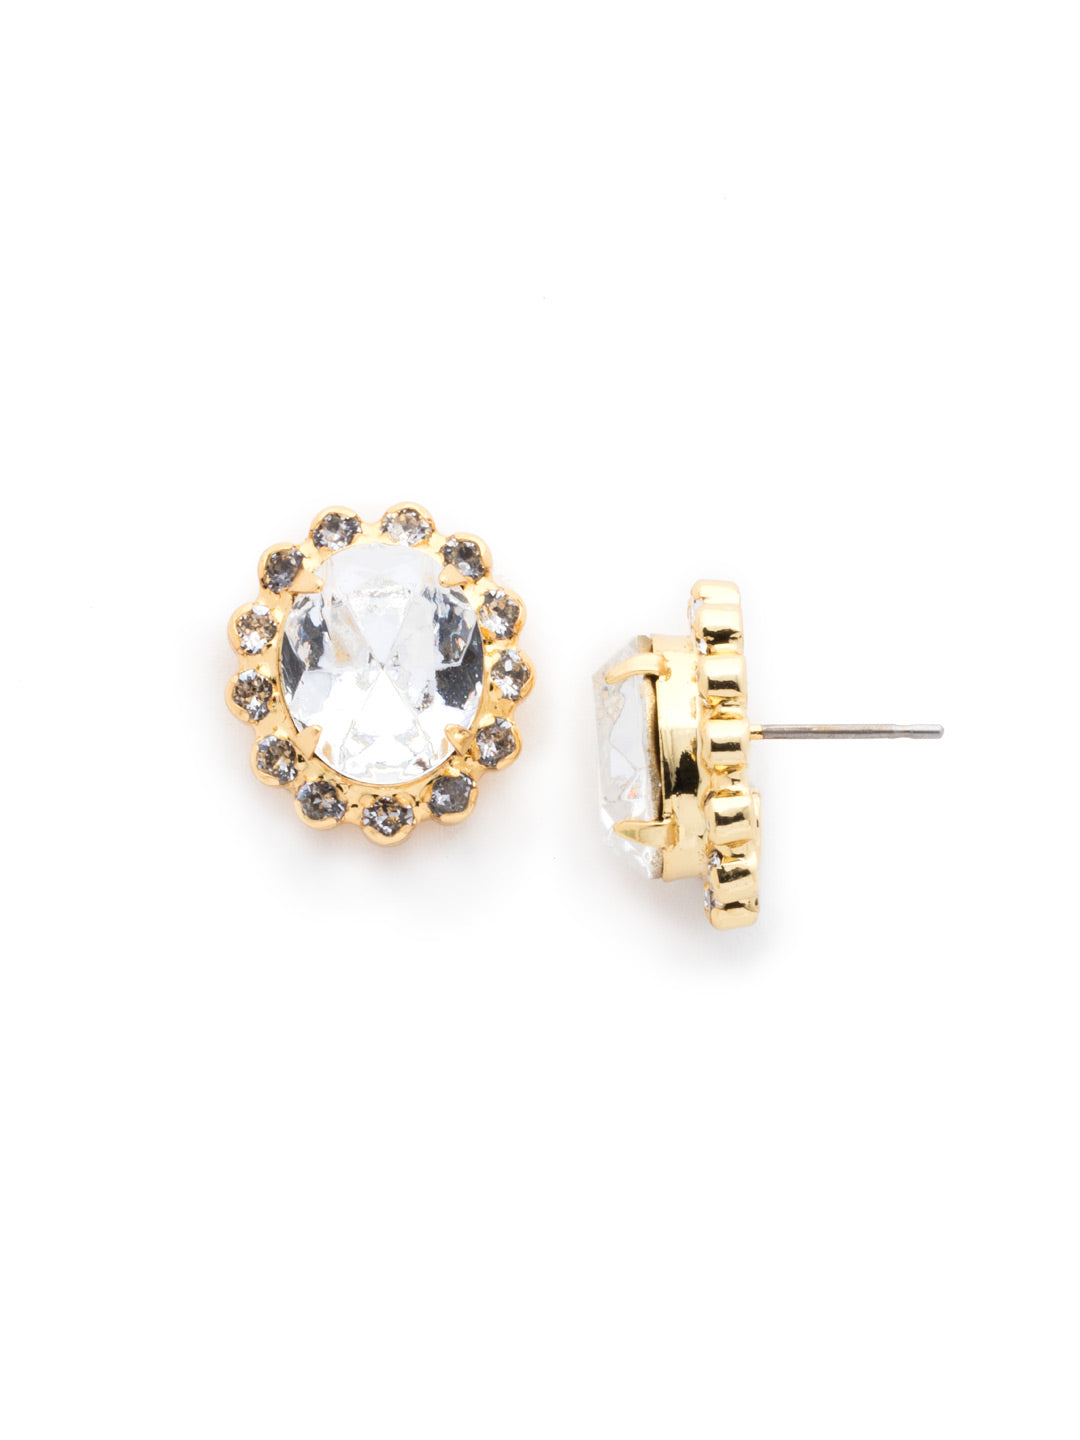 Crystal Encrusted Oval Post Earring - ECY5BGCRY